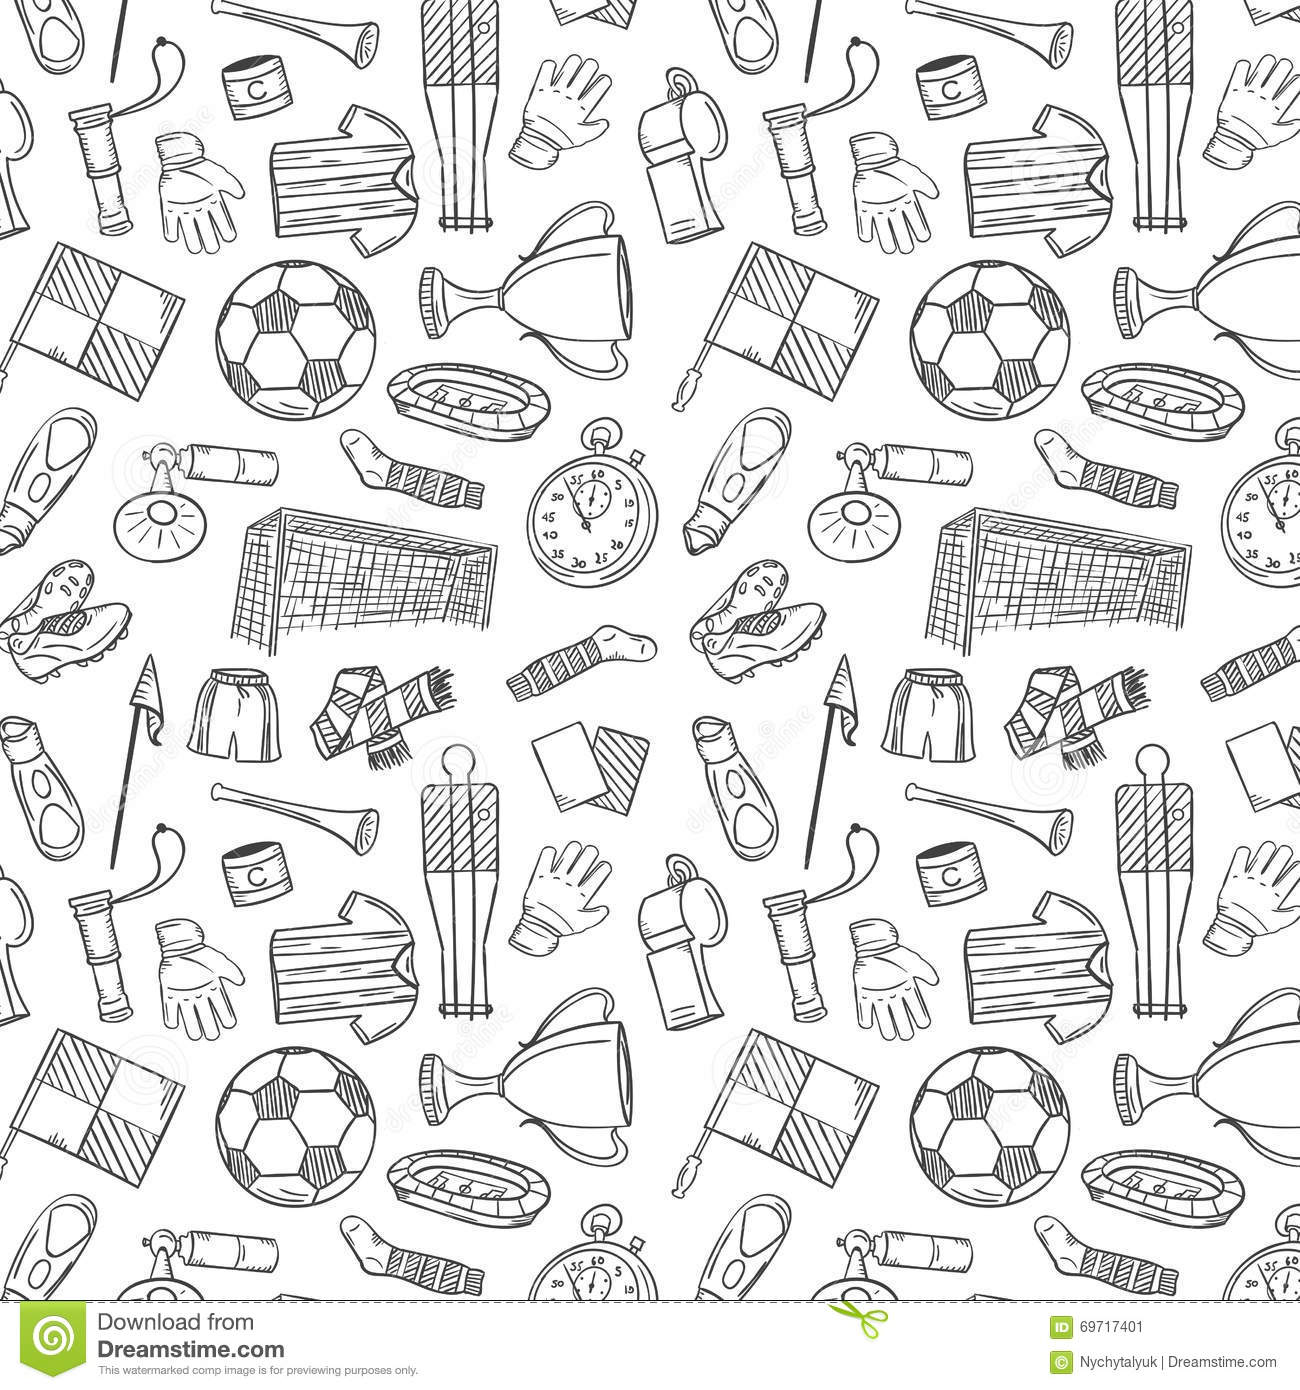 Sports pattern with soccerfootball symbols in hand draw style sports pattern with soccerfootball symbols in hand draw style buycottarizona Images